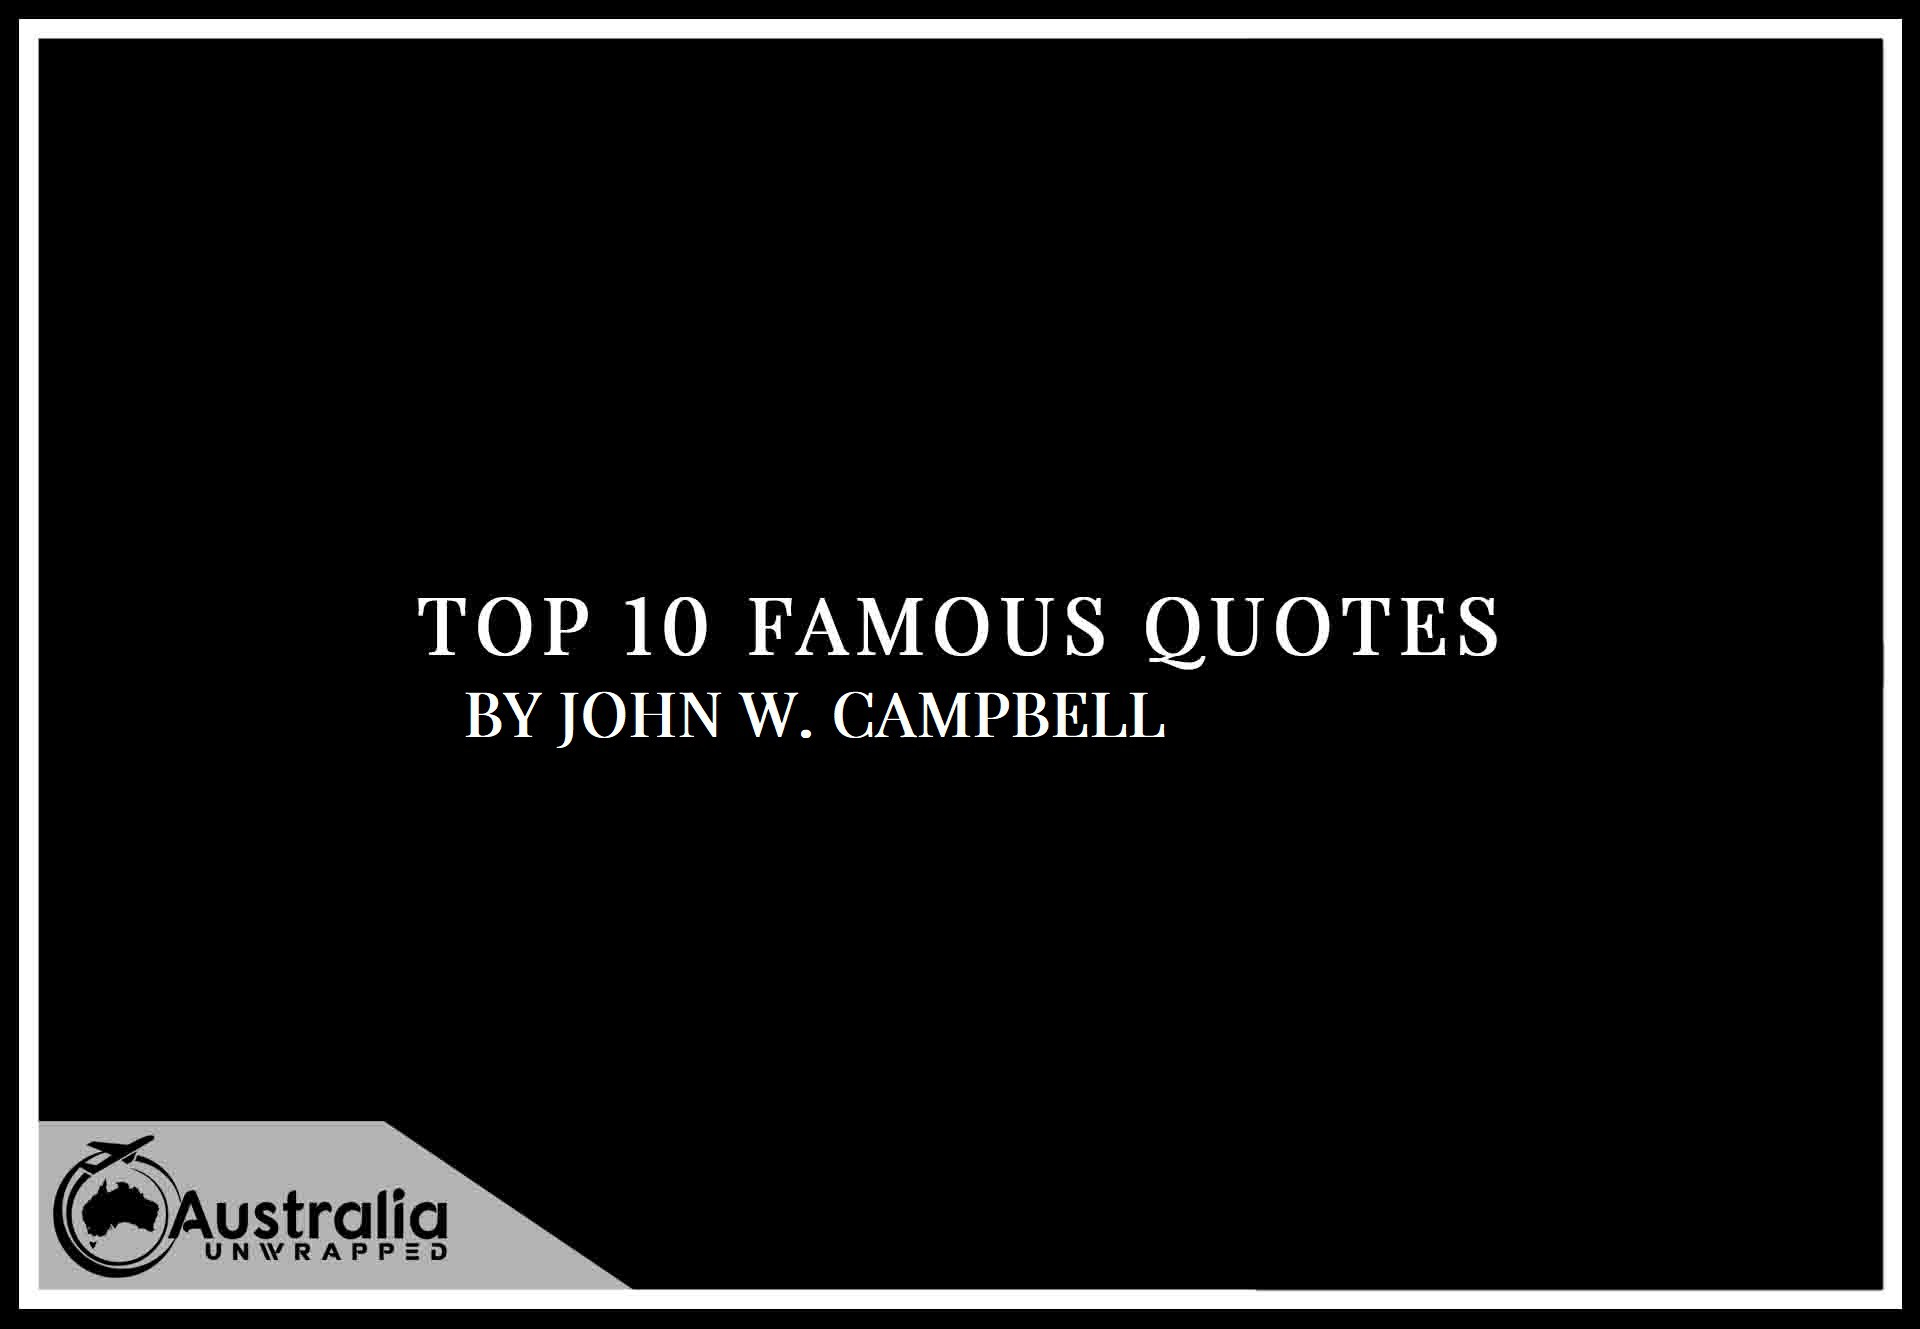 Top 10 Famous Quotes by Author John W. Campbell Jr.